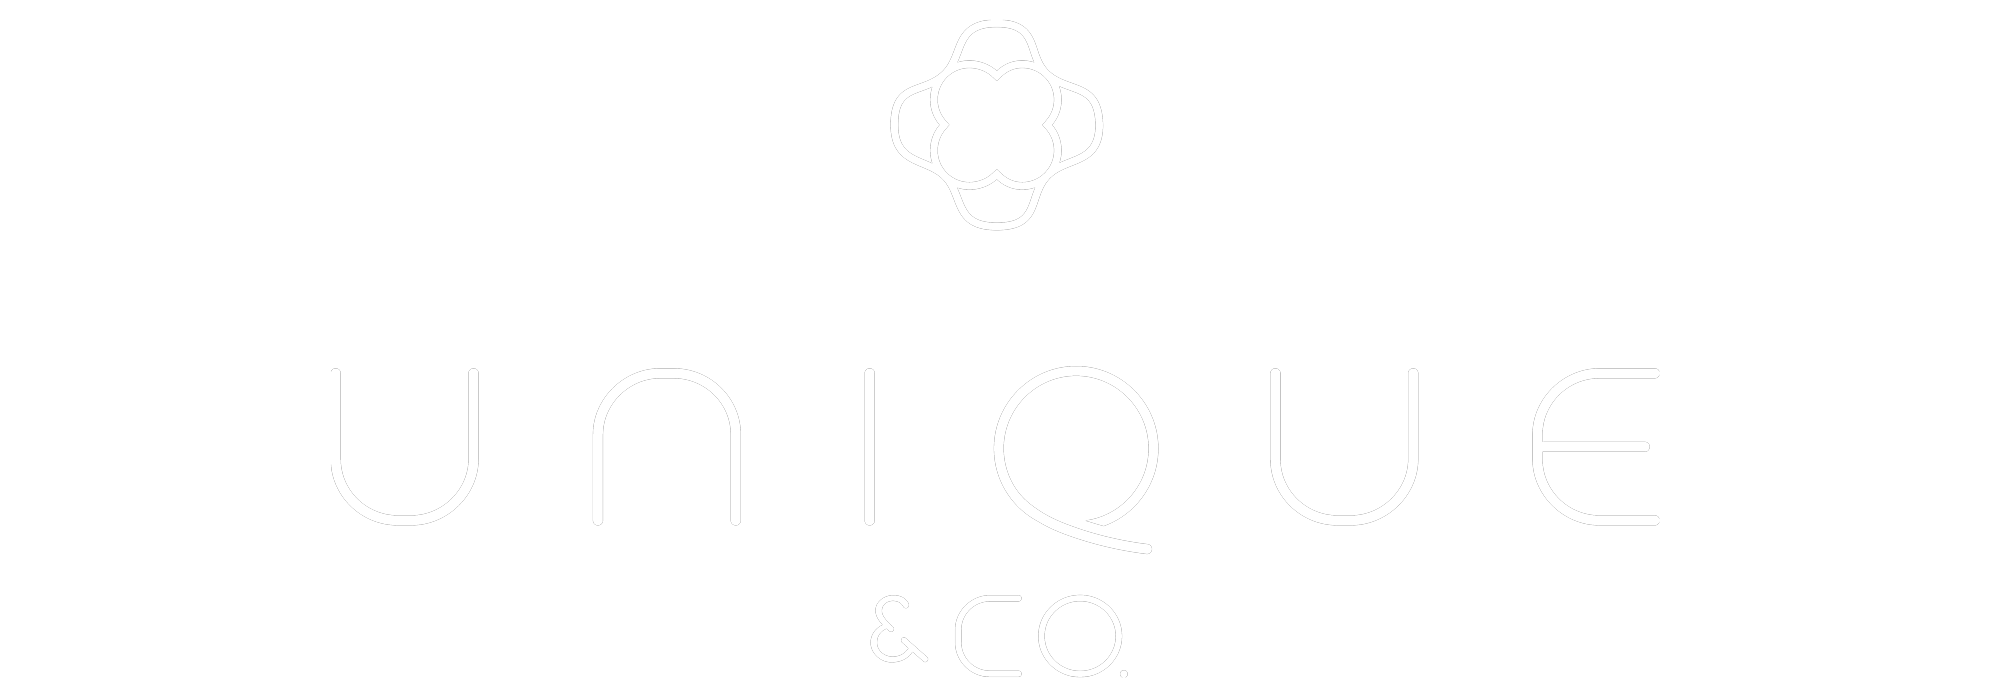 Unique-logo.png